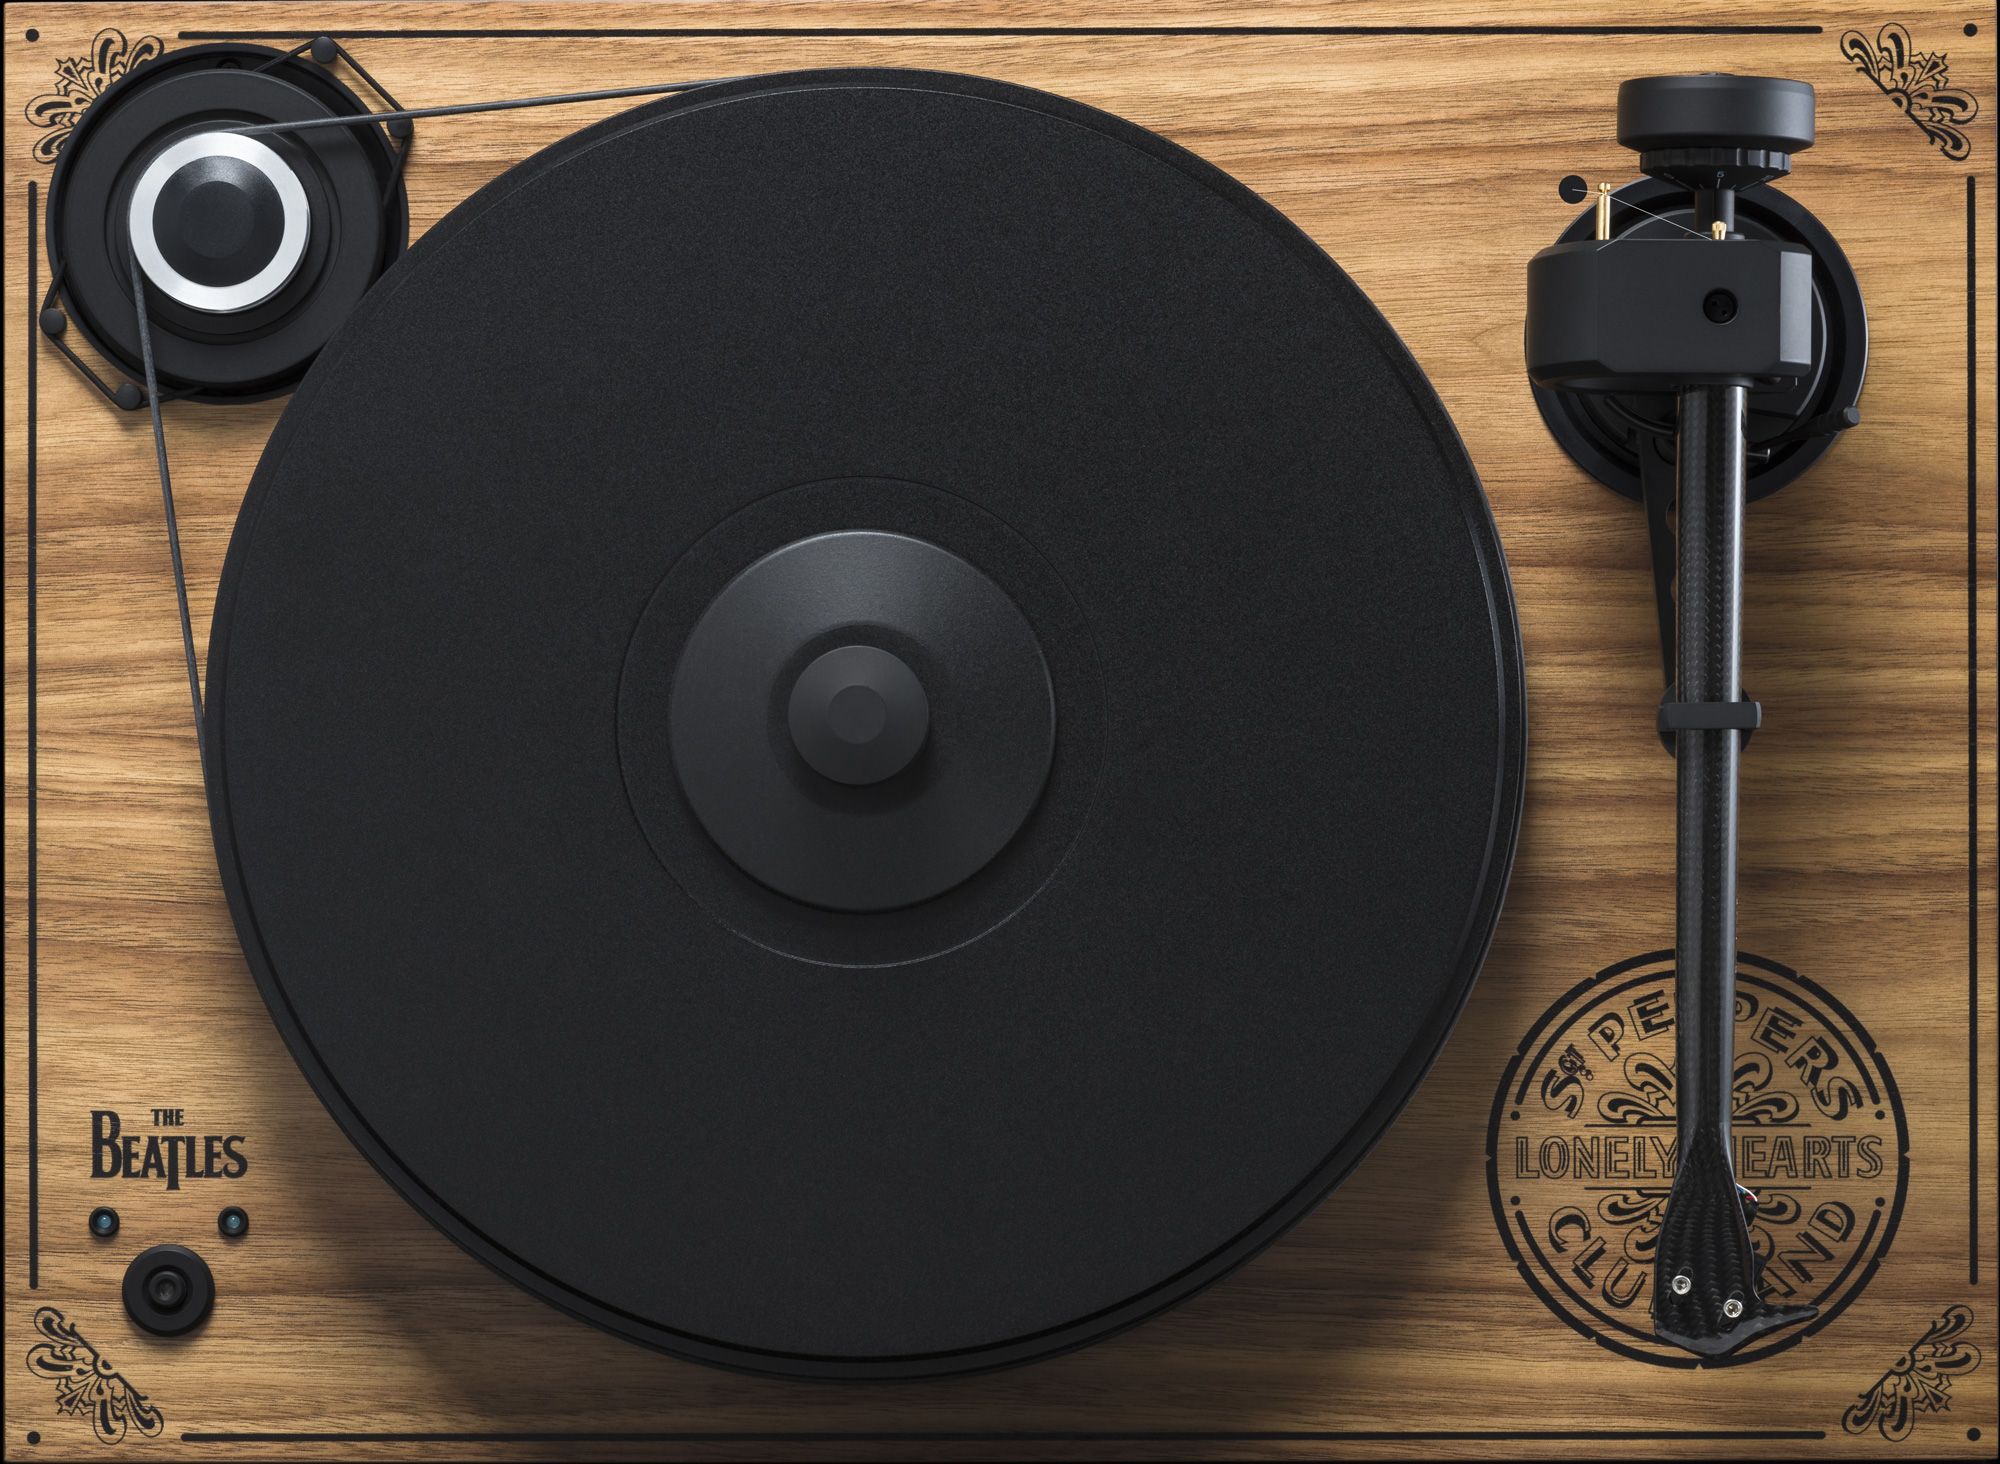 Pro-Ject Turntables for the 50th Anniversary of the Beatles' Sgt. Pepper's Lonely Hearts Club Band album